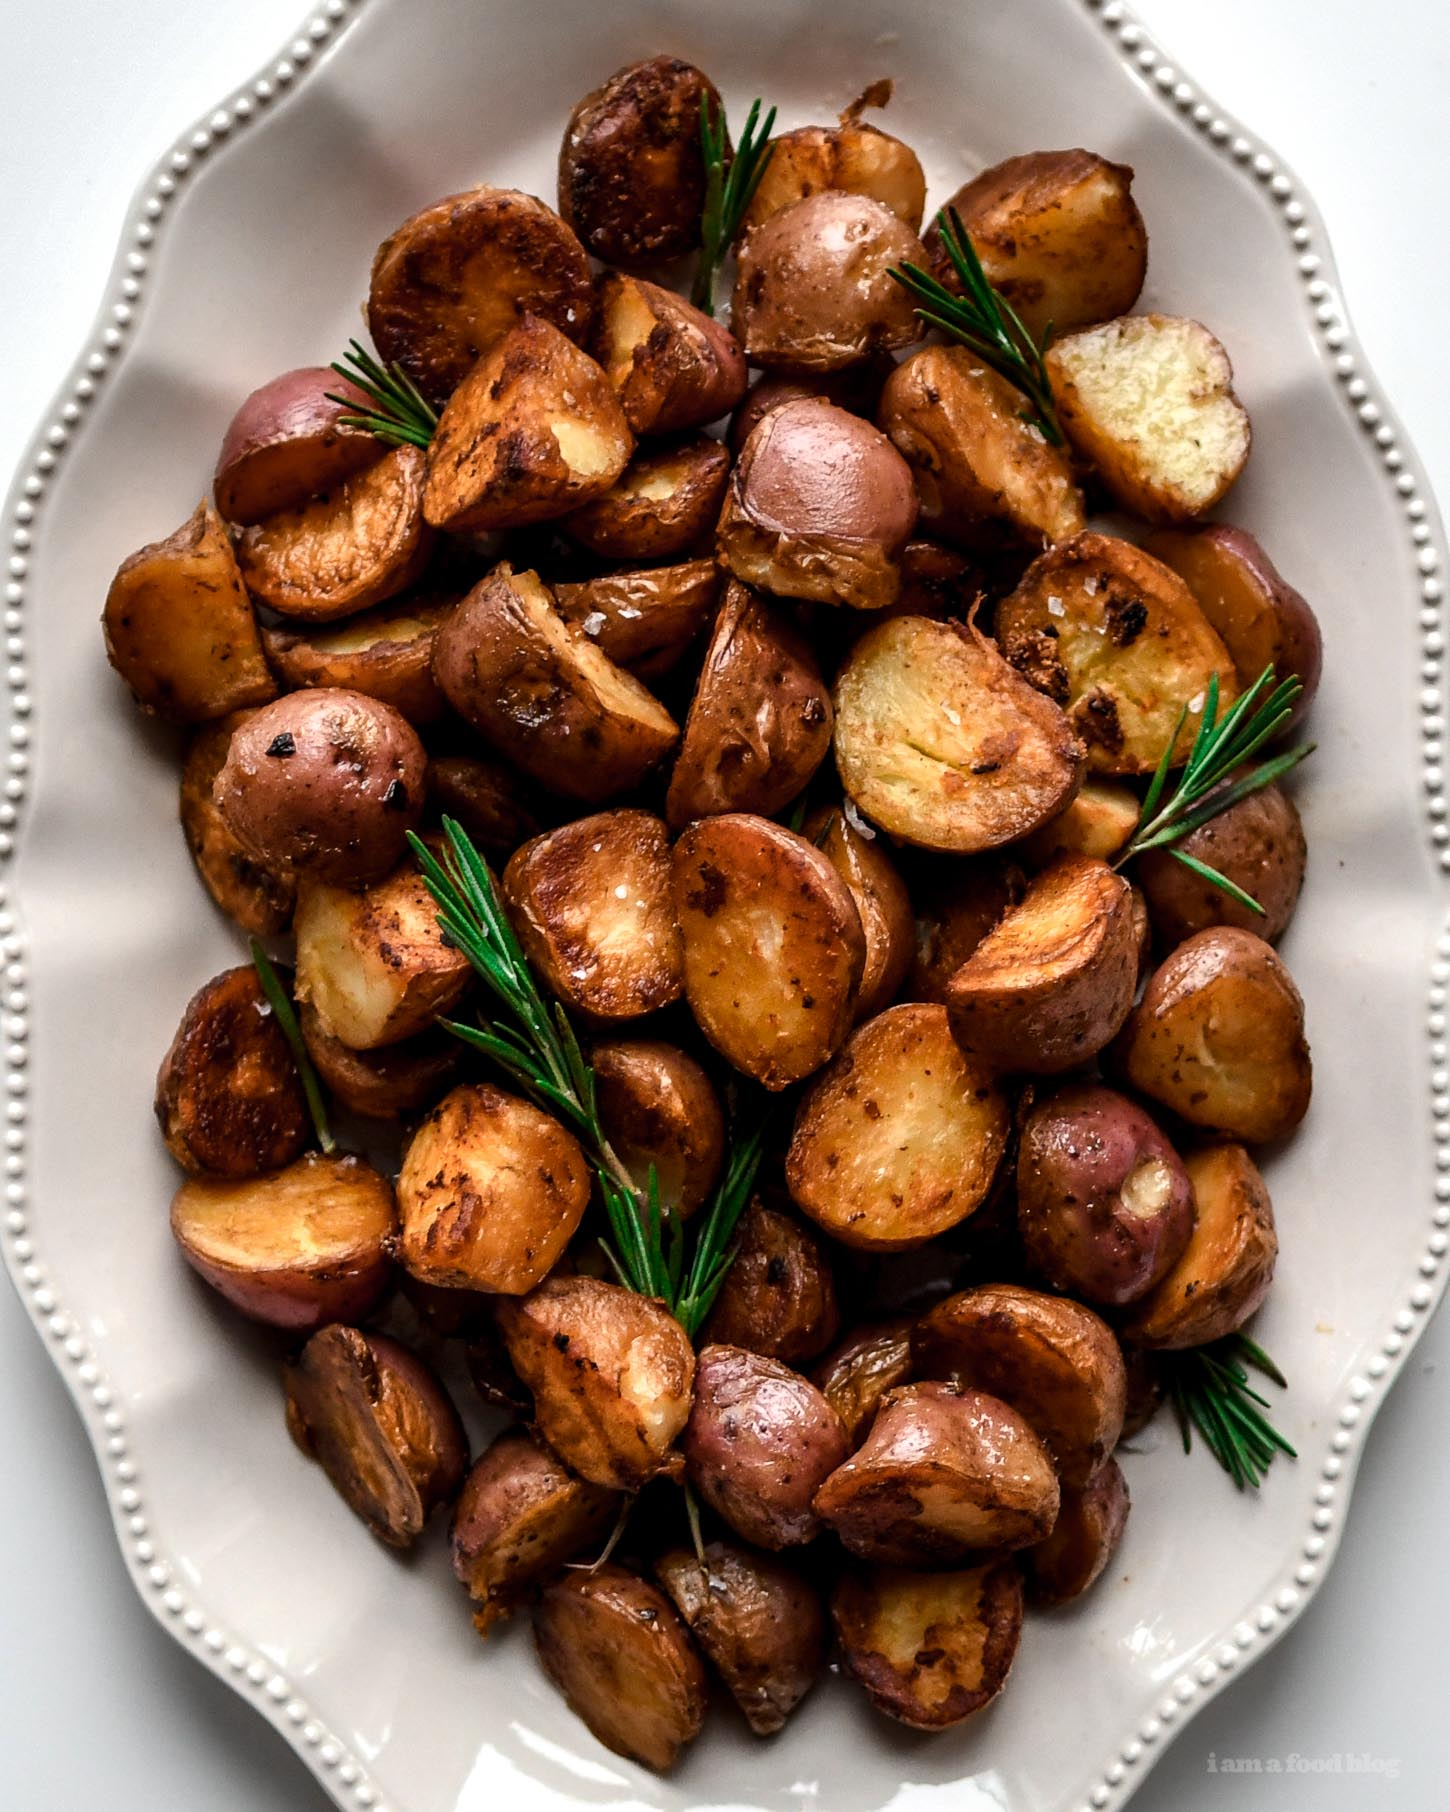 Easy Way To Cook Roasted Red Potatoes: Crispy Stovetop Roasted Red Potatoes Recipe · I Am A Food